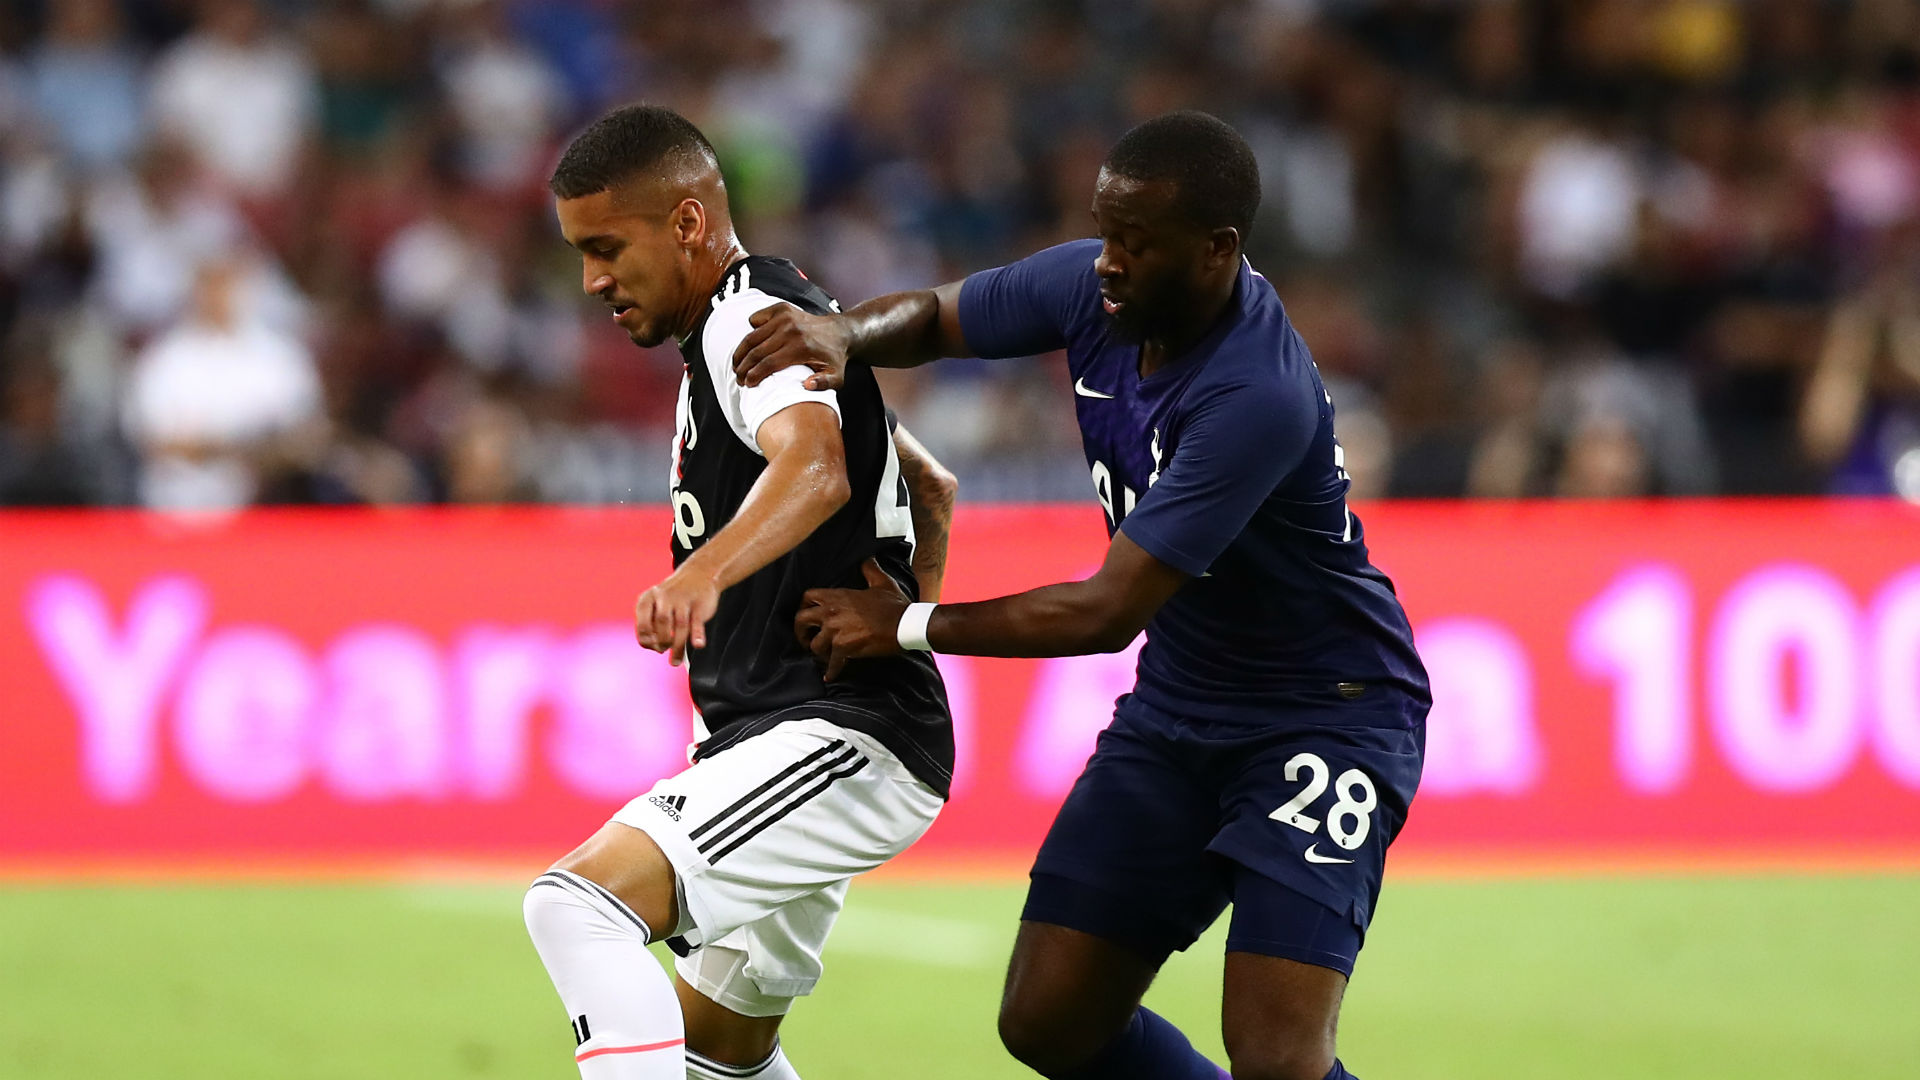 Pochettino preaches patience to Tottenham supporters following Ndombele's impressive debut